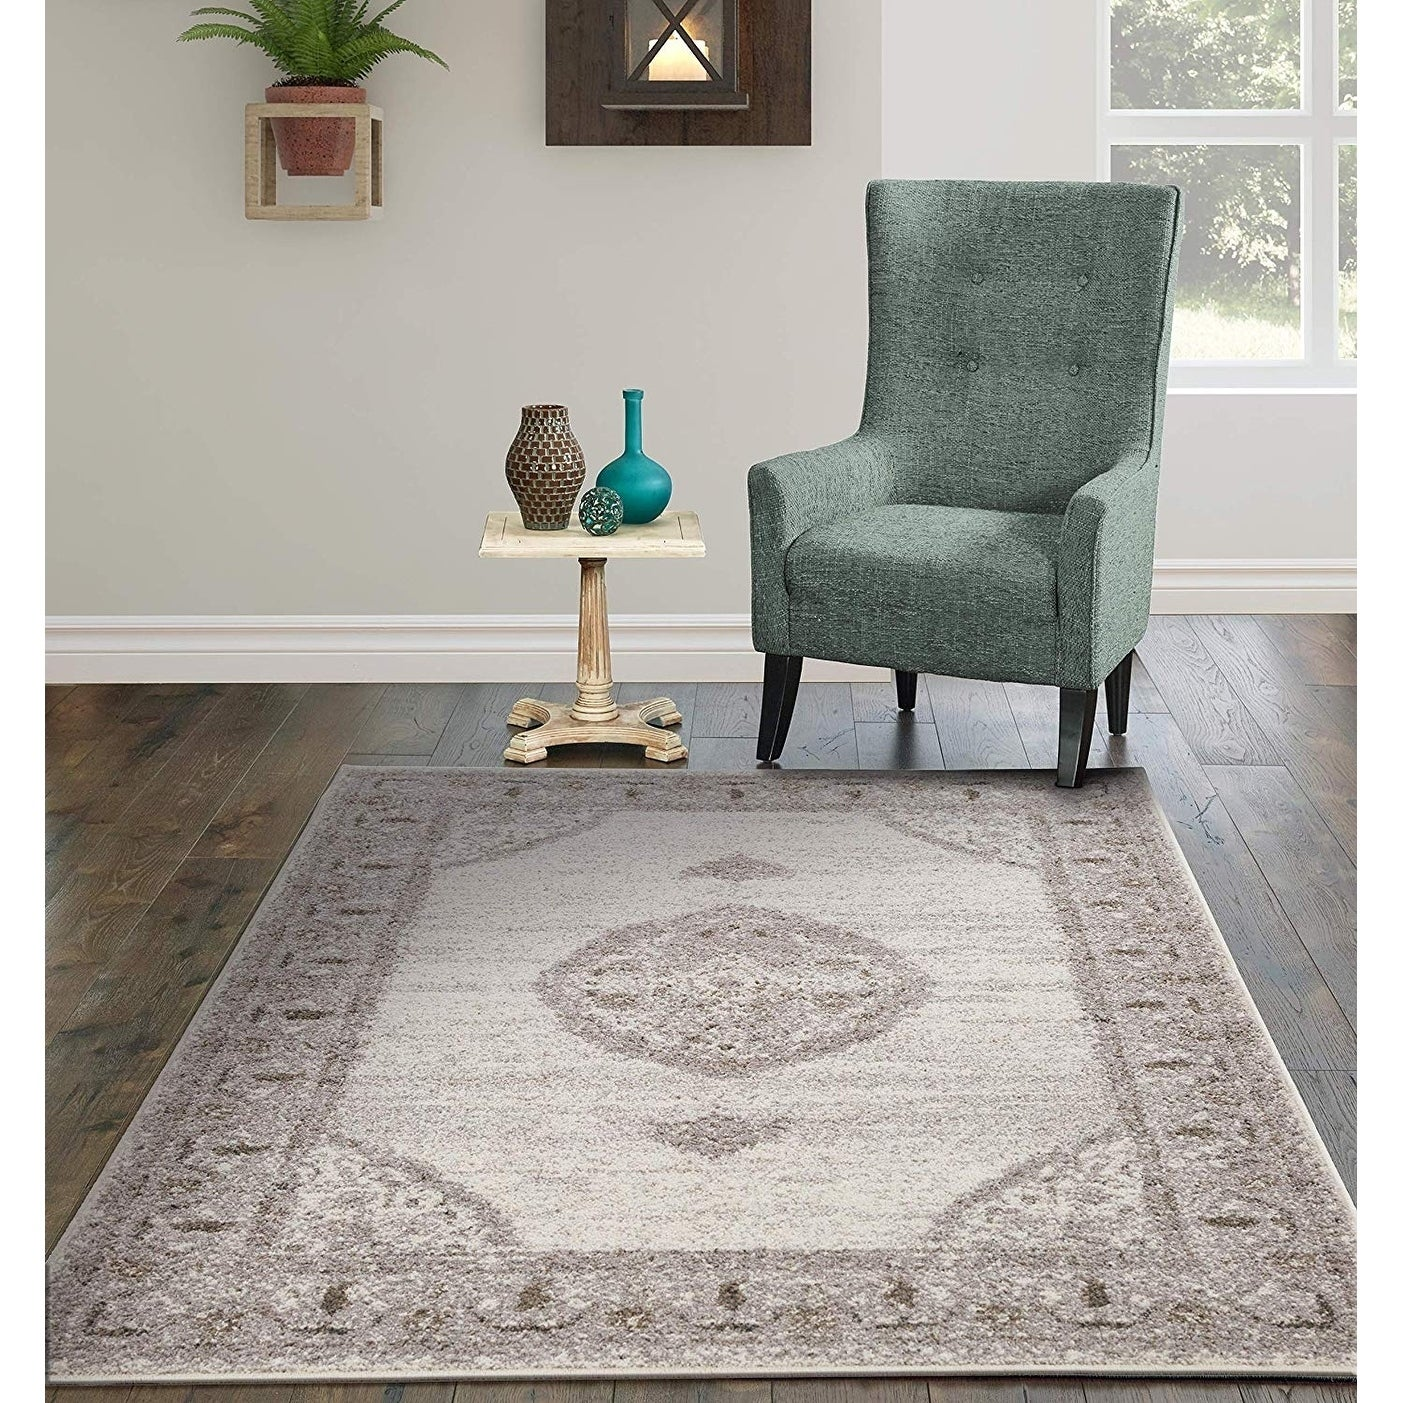 Shop Copper Grove Siuntio Distressed Cream And Grey Area Rug On